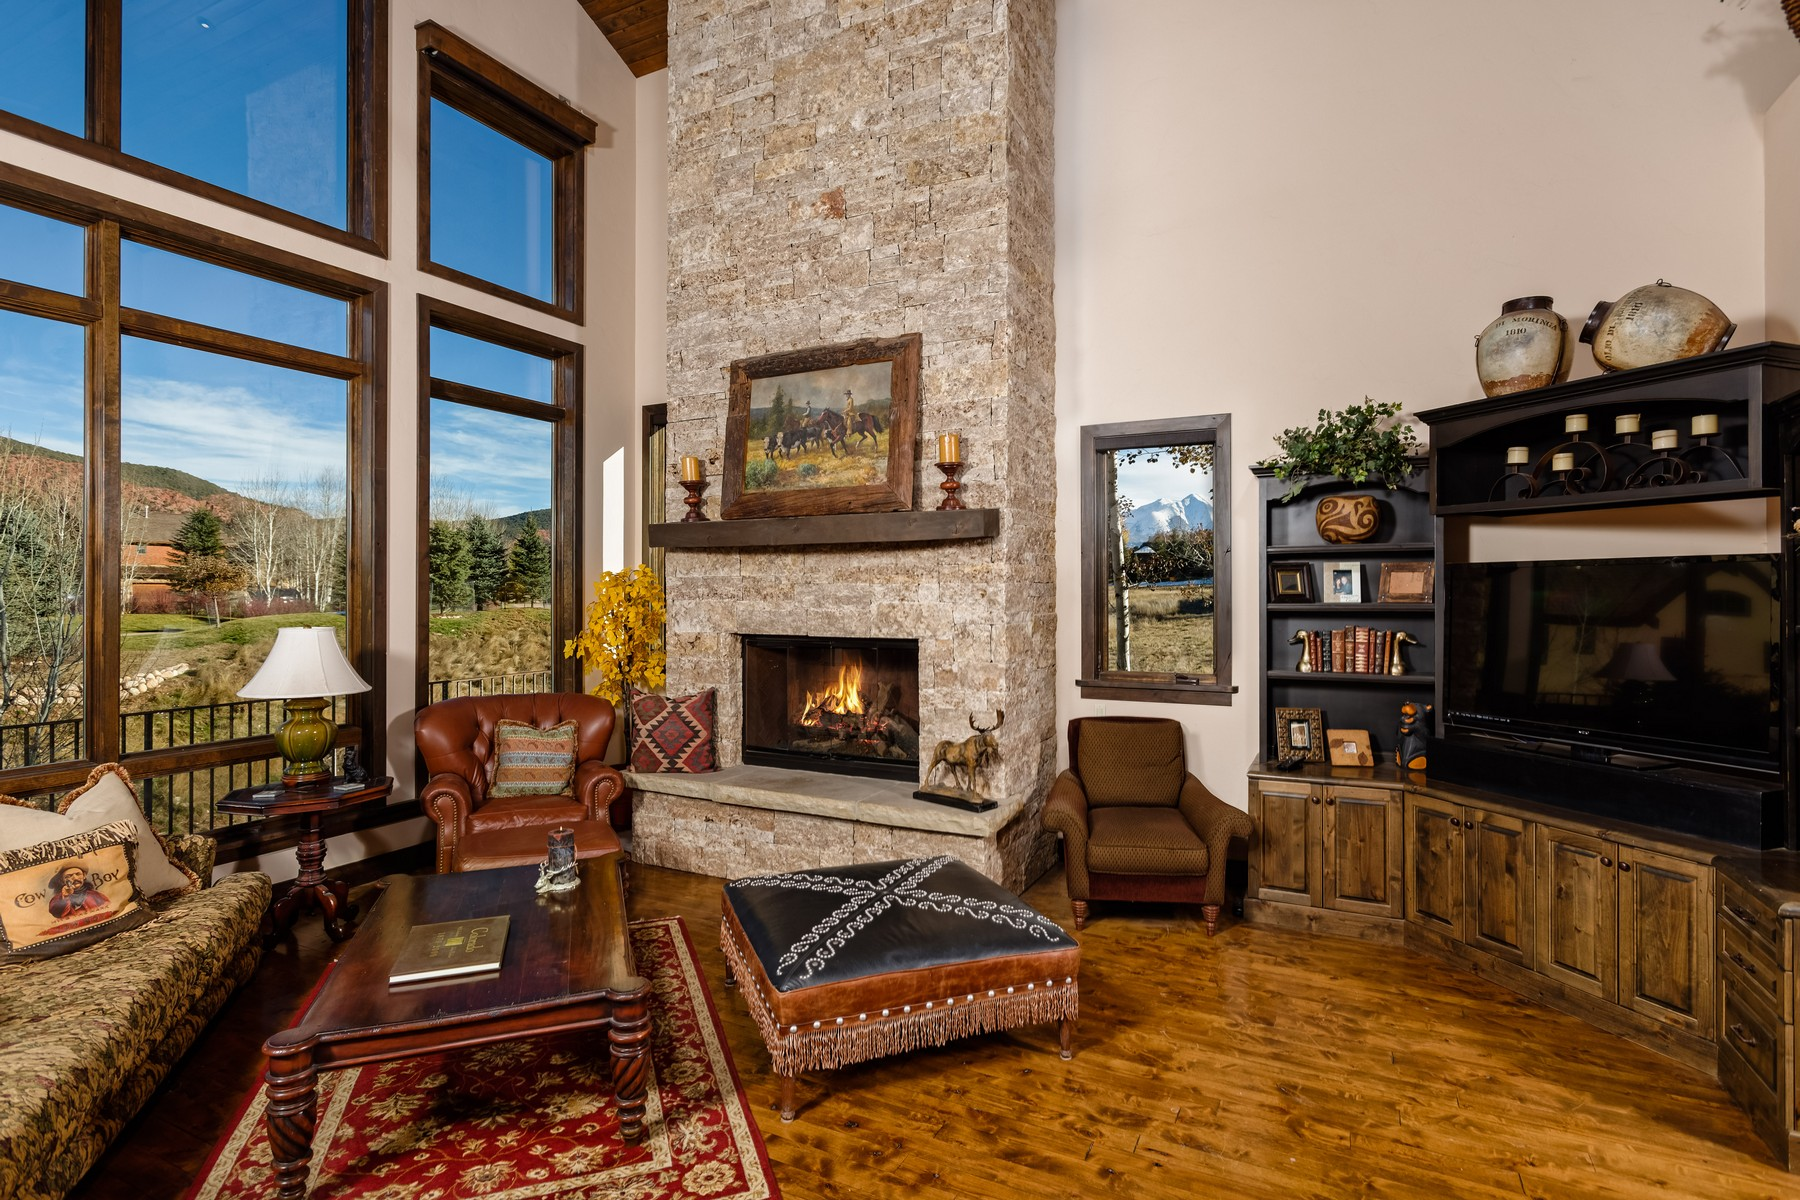 Single Family Home for Sale at Aspen Glen, Colorado 94 Midland Loop Carbondale, Colorado 81623 United States